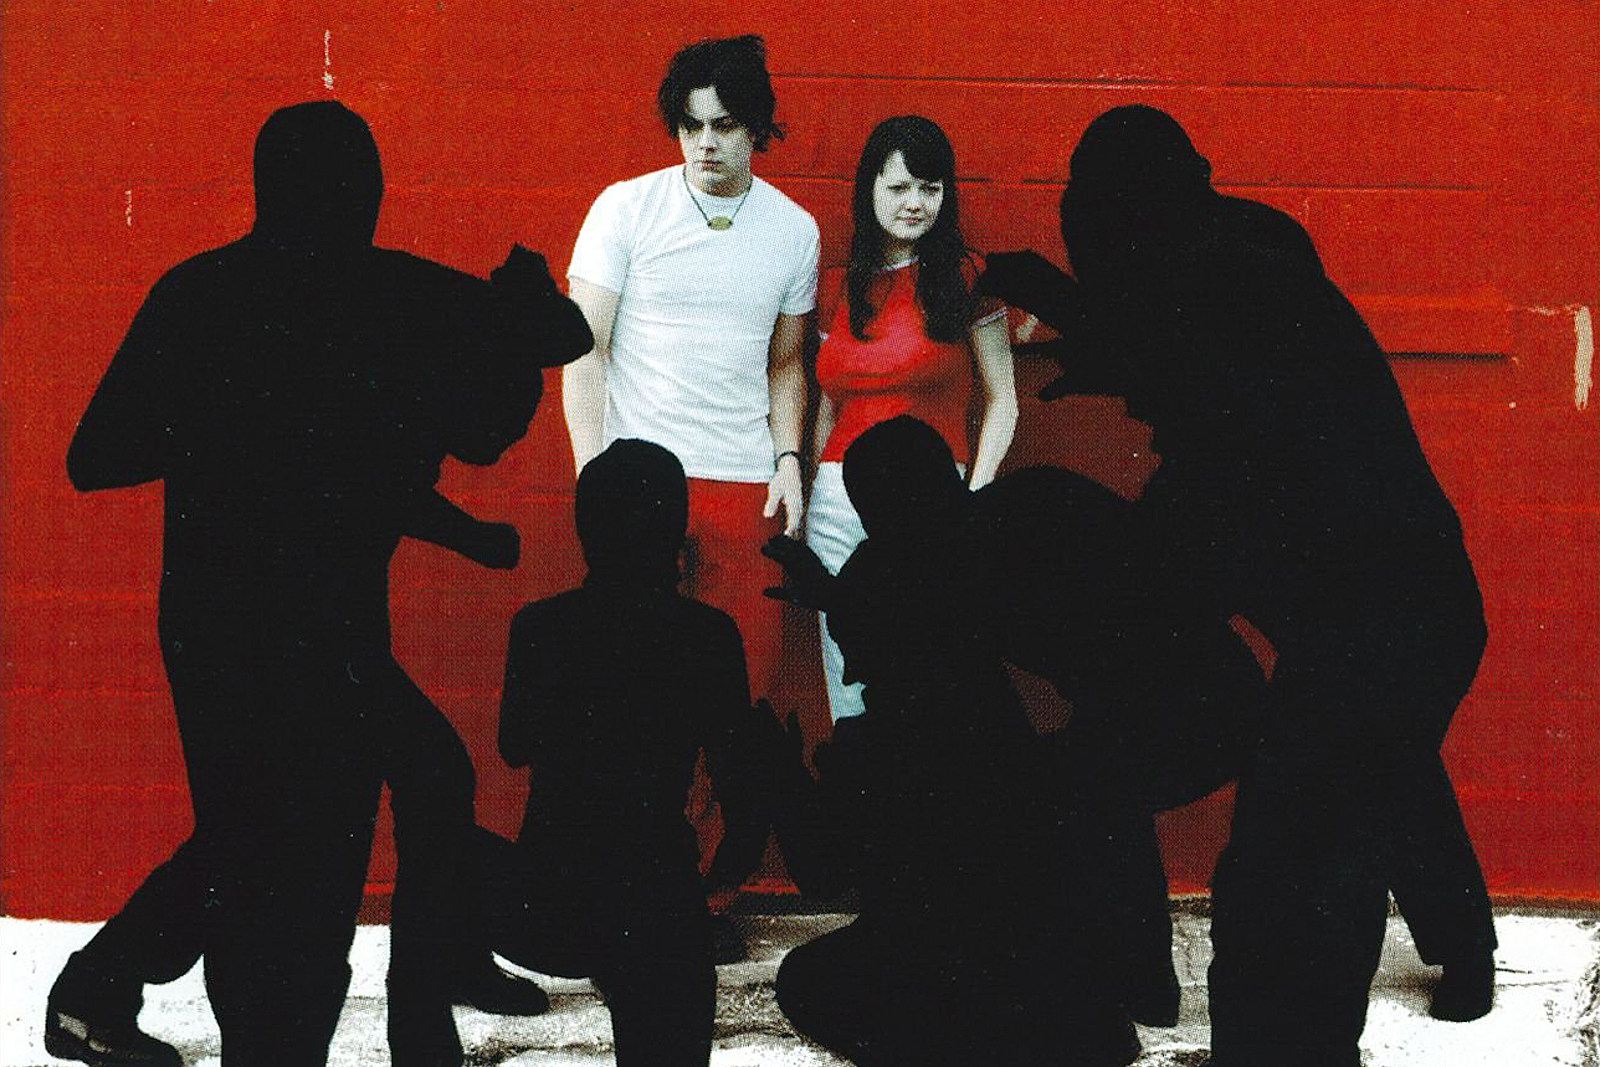 Why White Stripes Made 'White Blood Cells' 'as Raw As Possible'